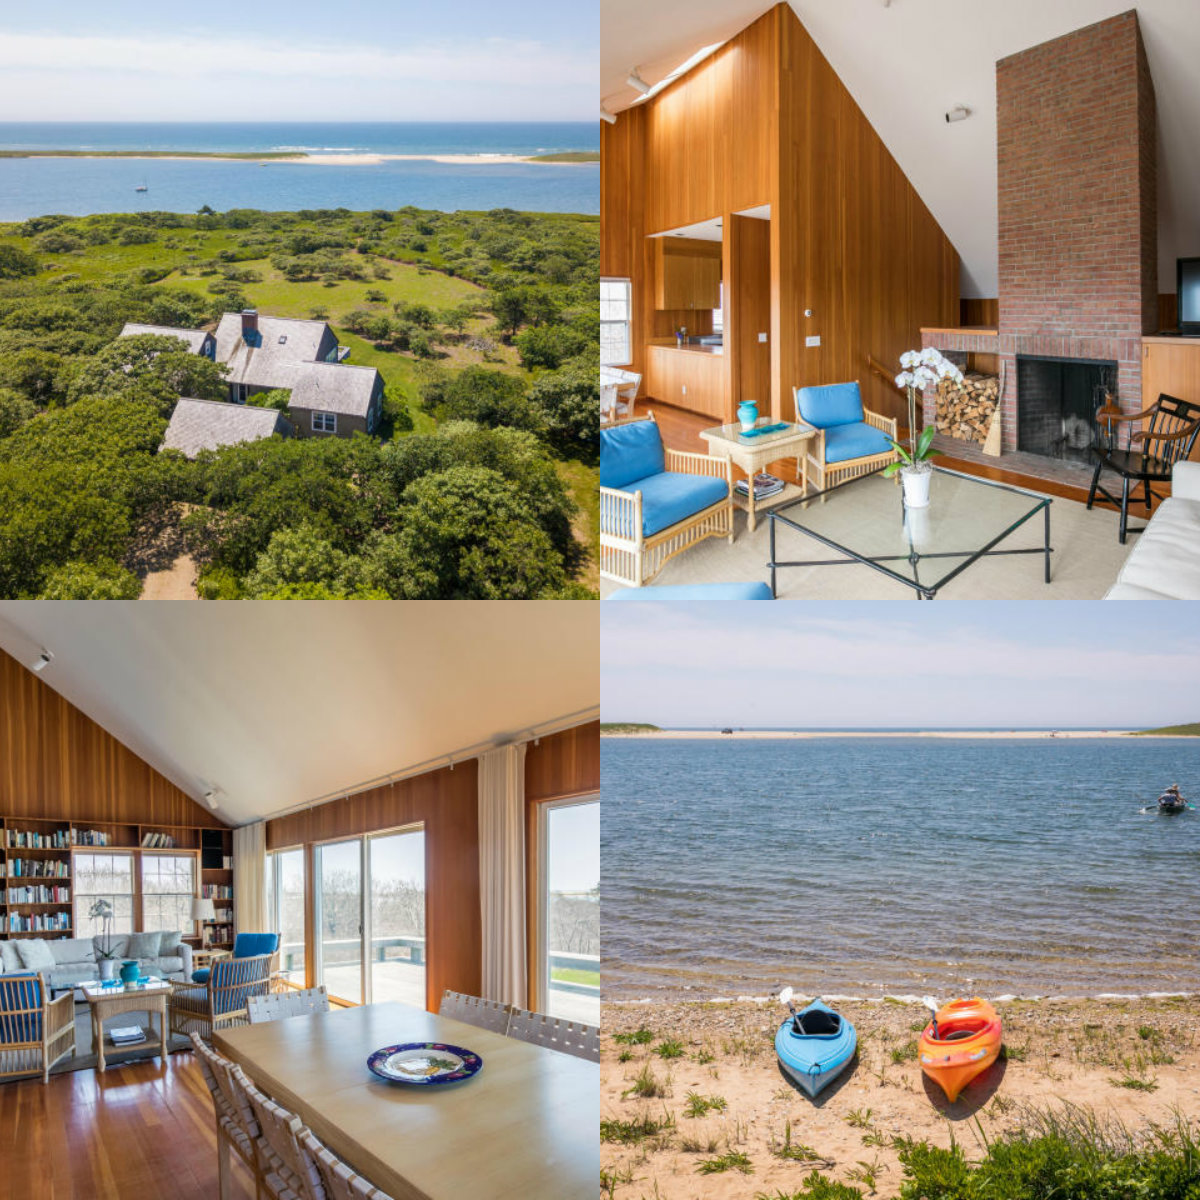 4 images of 50 Oyster Watcha Road in Edgartown in Cape Cod MA